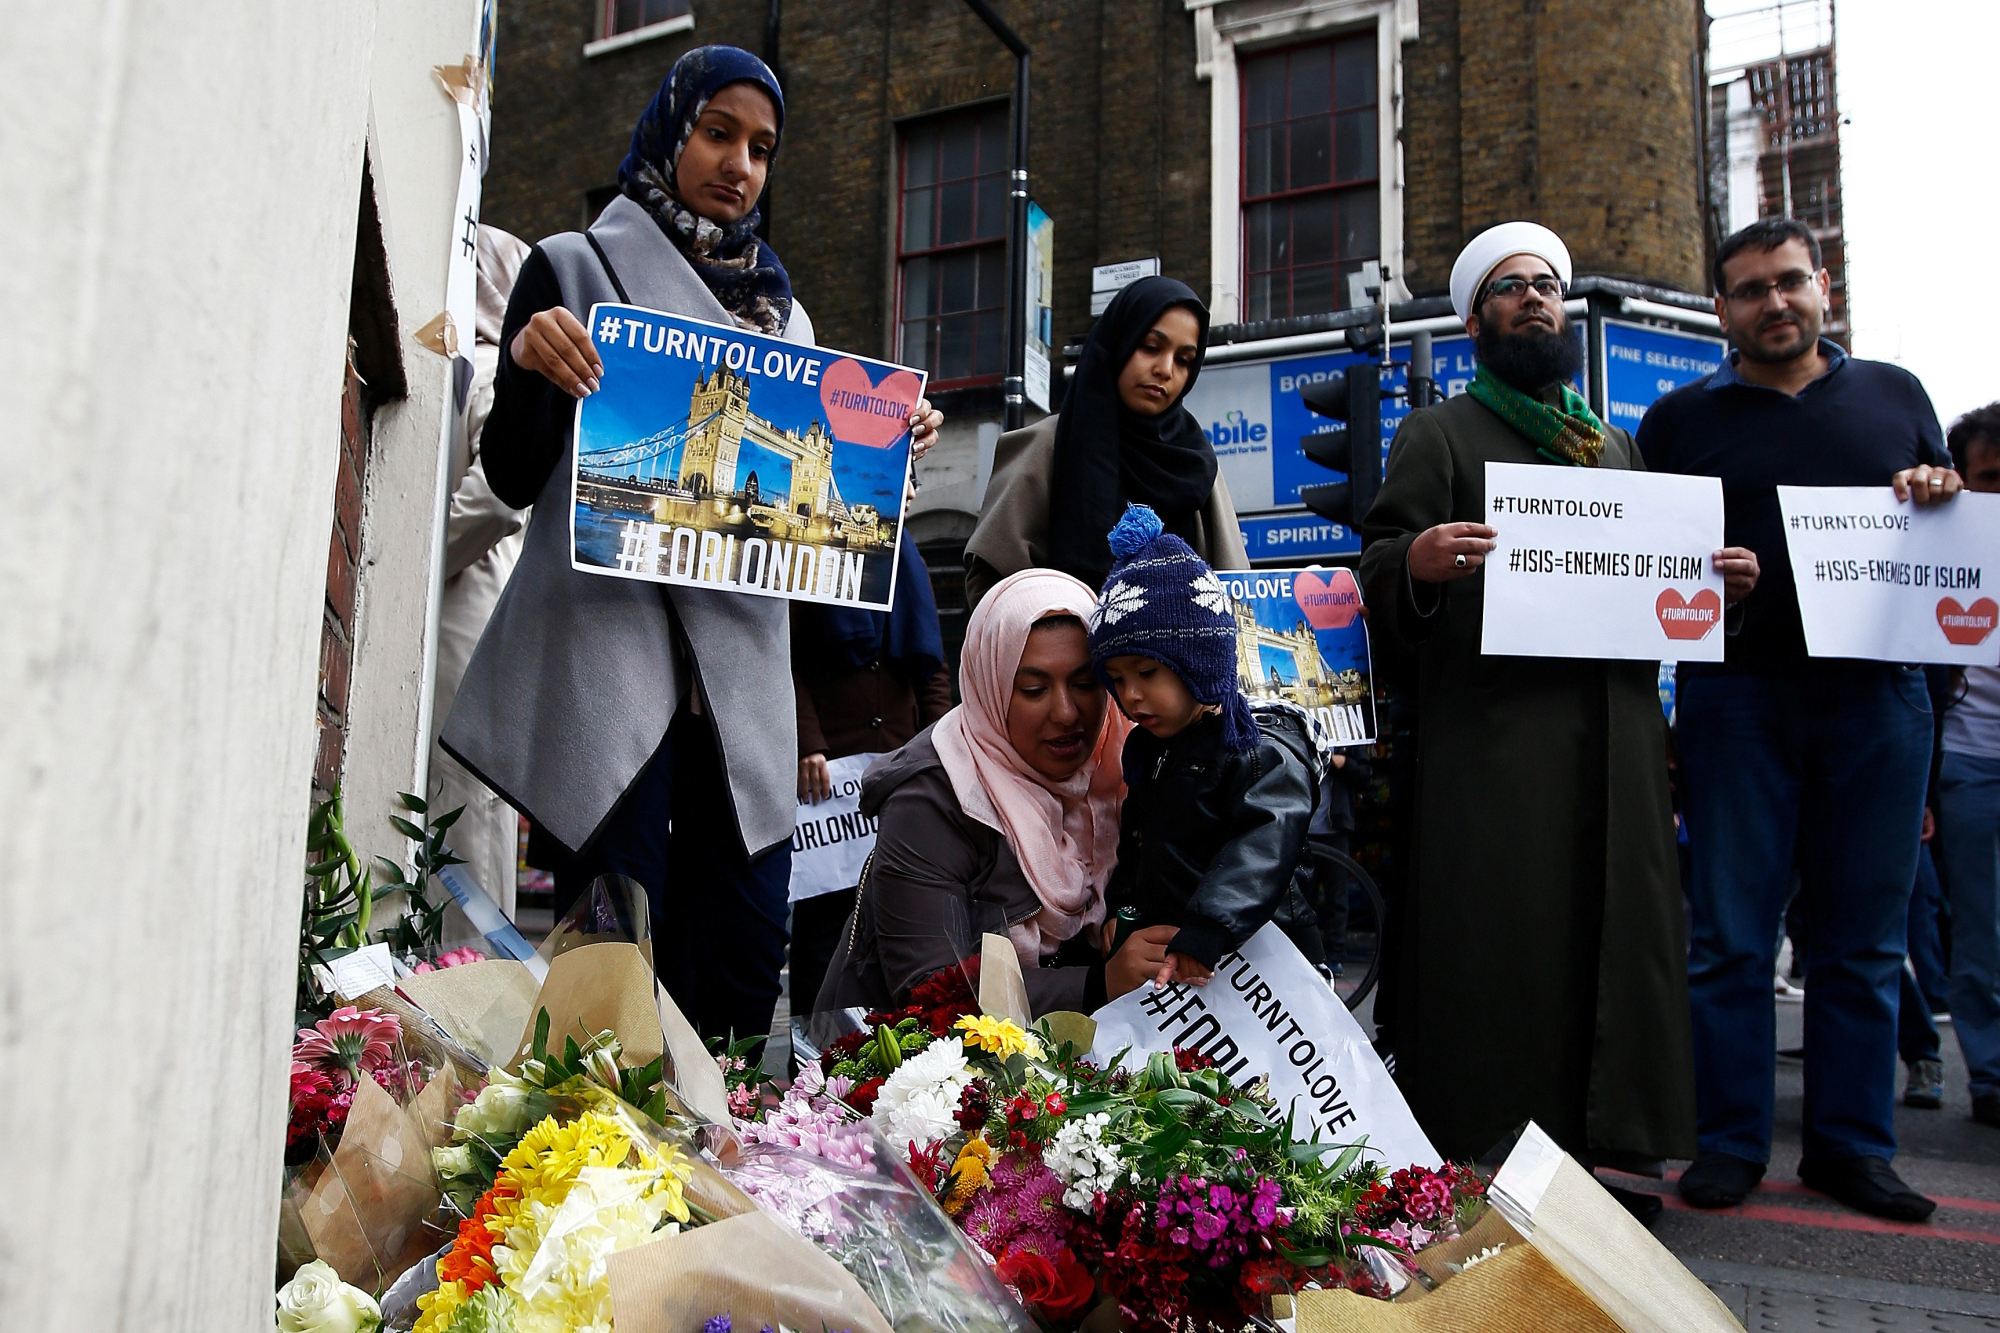 Uk muslims press for peace at 10 downing street -  Muslims Pray At A Tribute Near London Bridge After A Deadly Terrorist Attack There And At